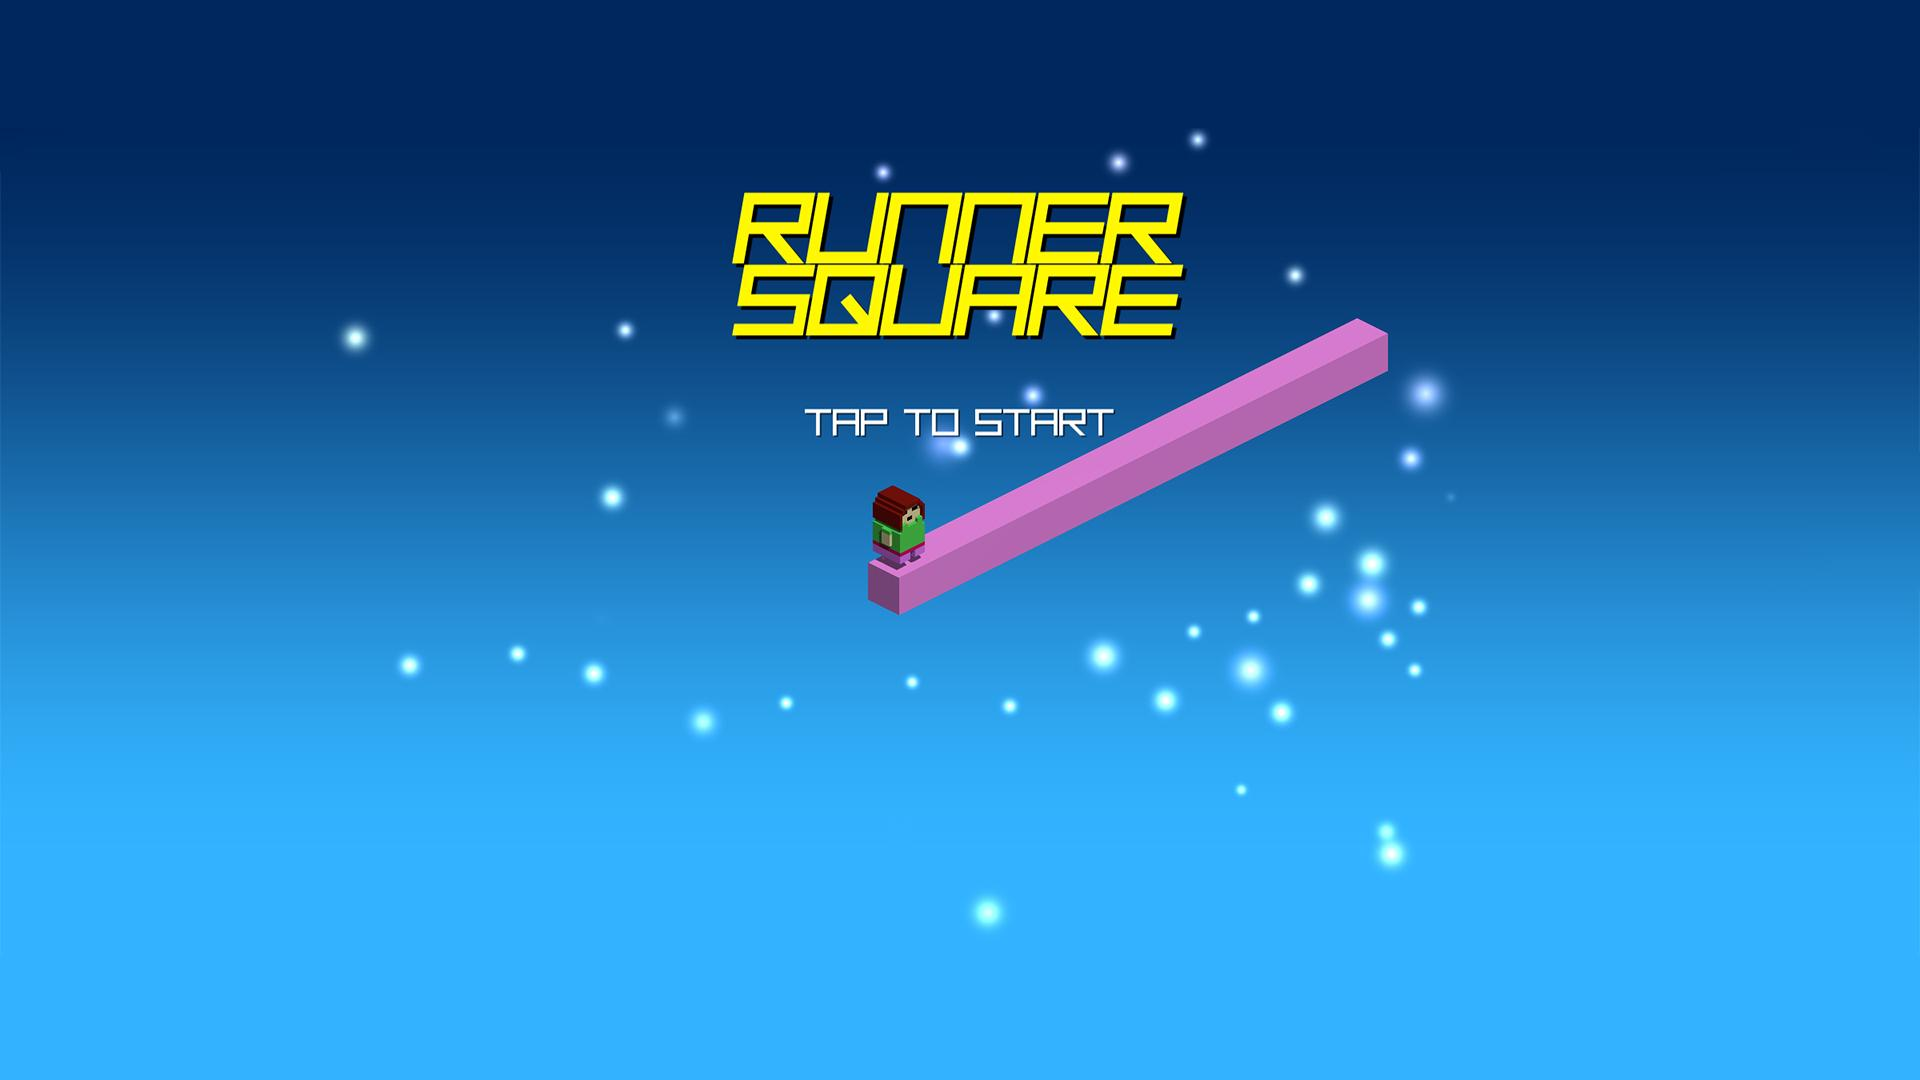 RUNNER SQUARE - Easy Play Funny Game 2020